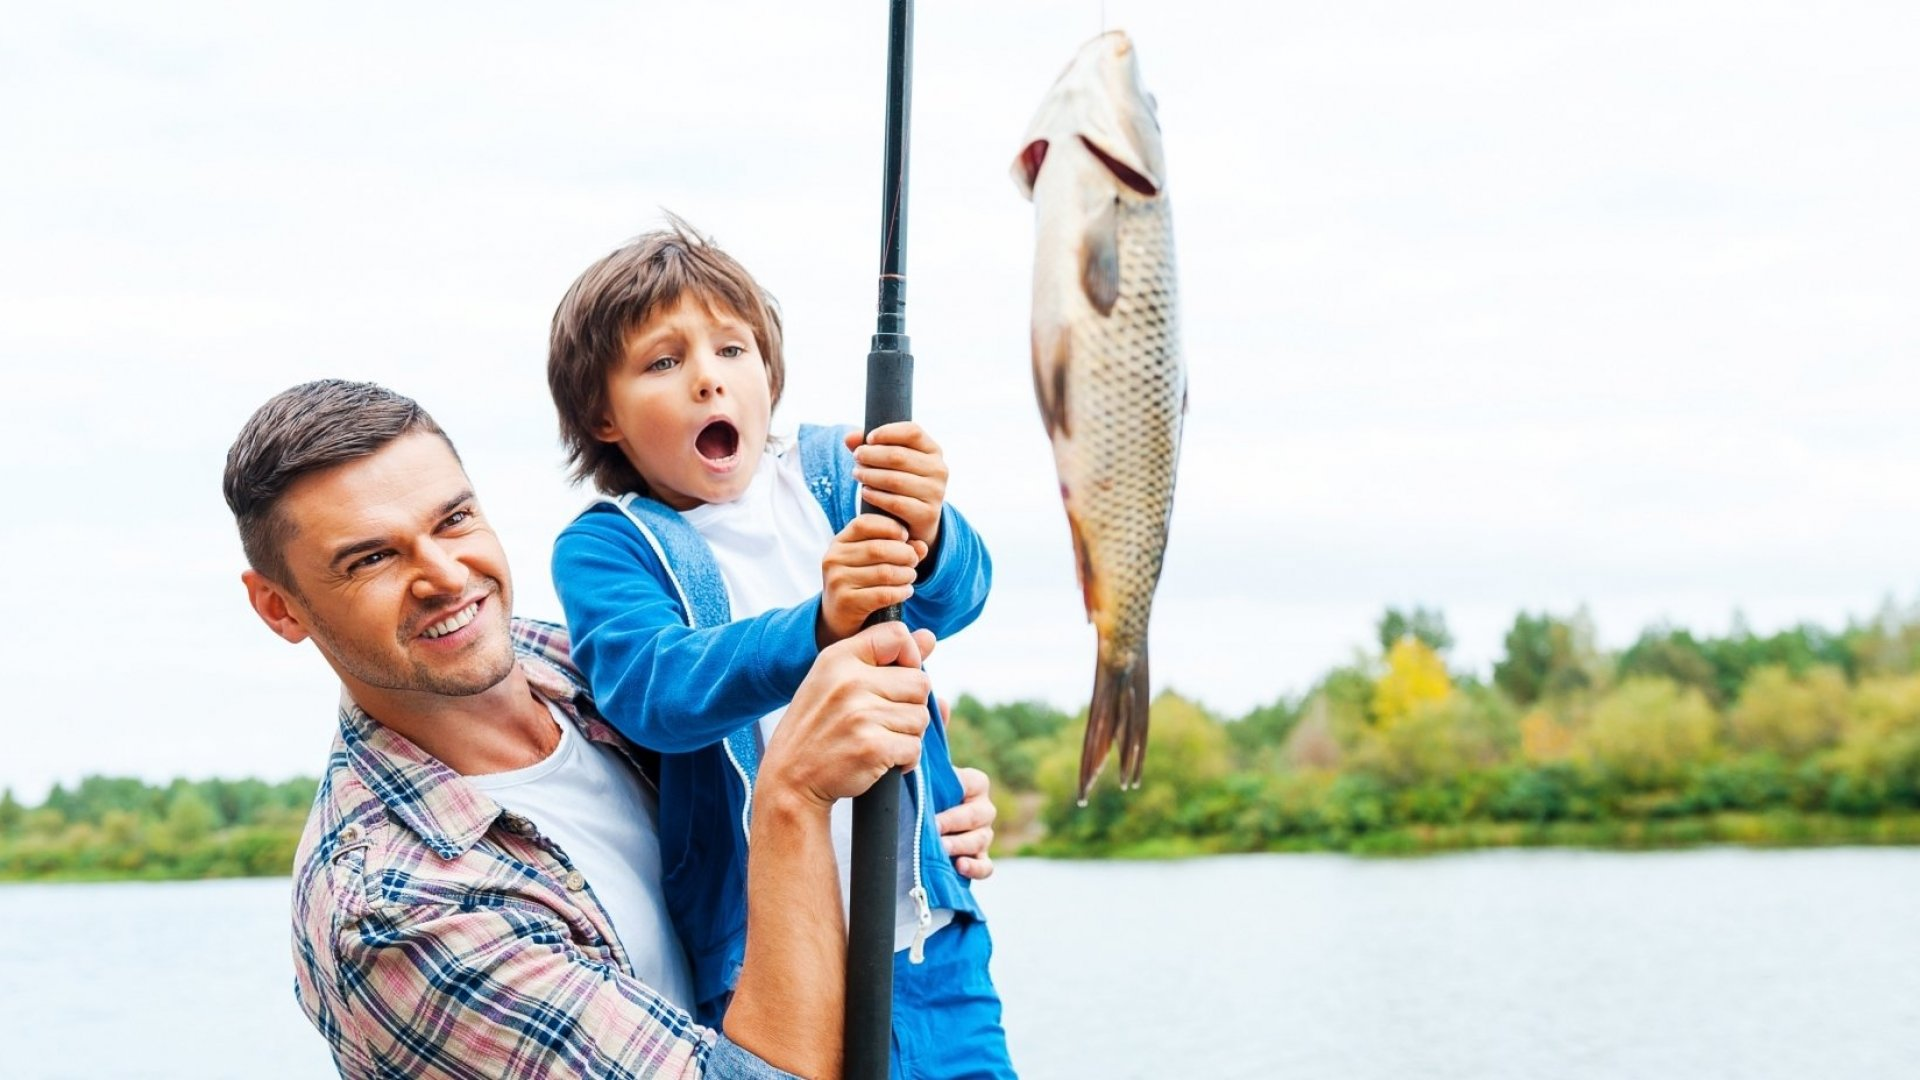 3 Essential Life Lessons You Can Learn Just by Going Fishing | Inc.com